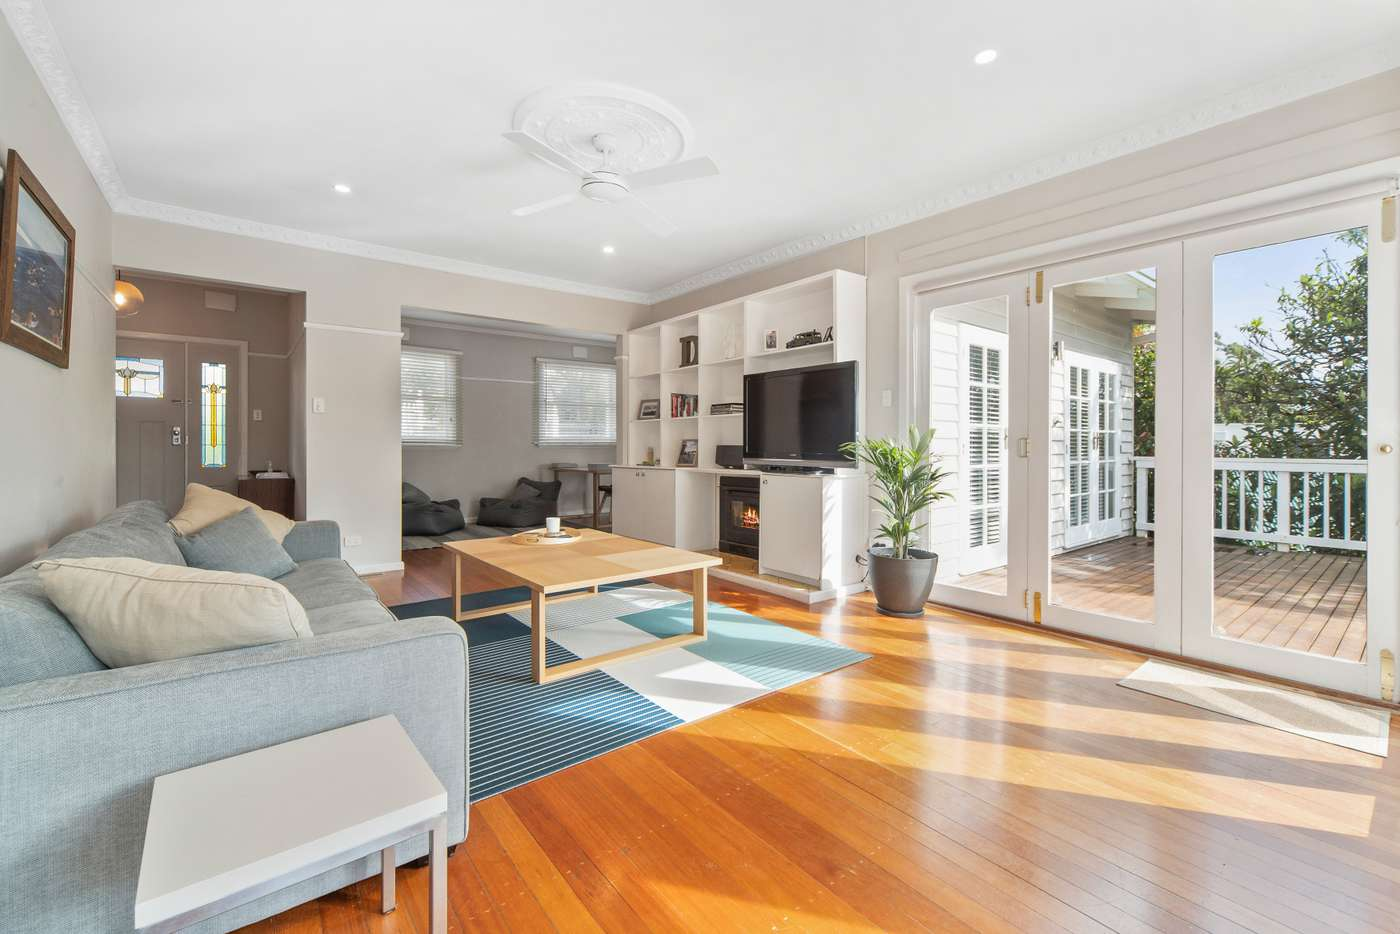 Main view of Homely house listing, 21 Plummer Avenue, Frankston South VIC 3199